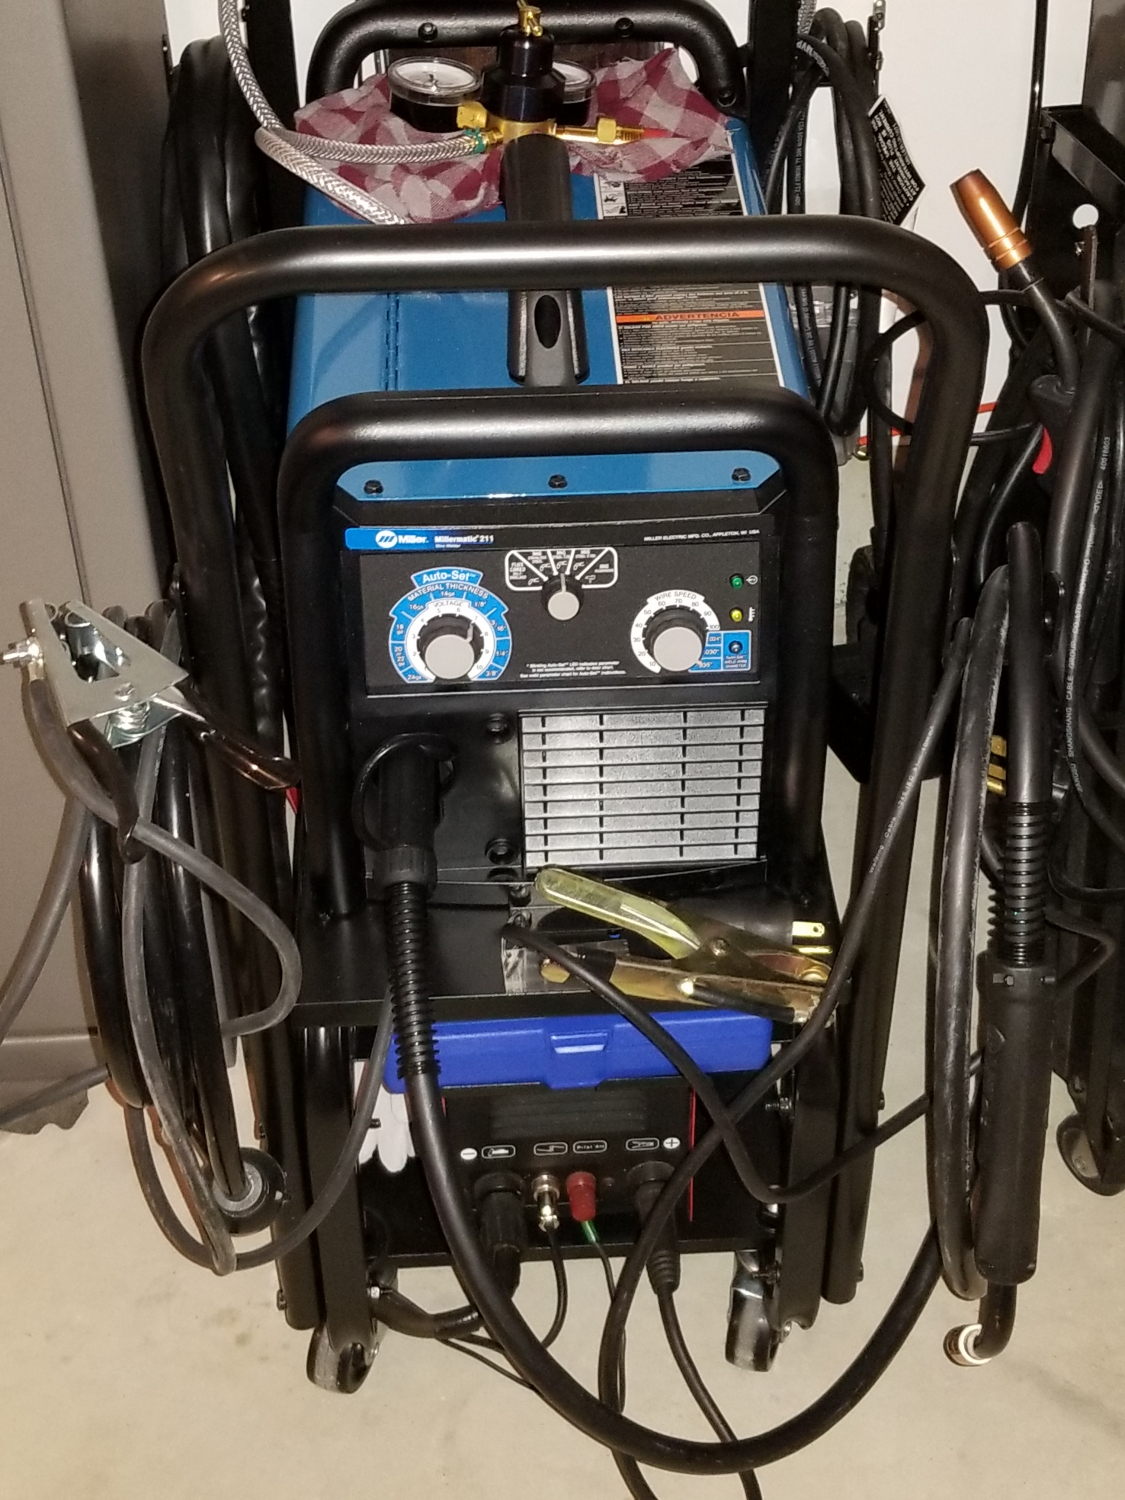 Millermatic 211 Mig Welder With Advanced Auto Set 907614 Race Car Wiring Is A Great It Welds Perfectly The Settings Are Excellent For And This Best I Have Ever Owned Its Cadillac